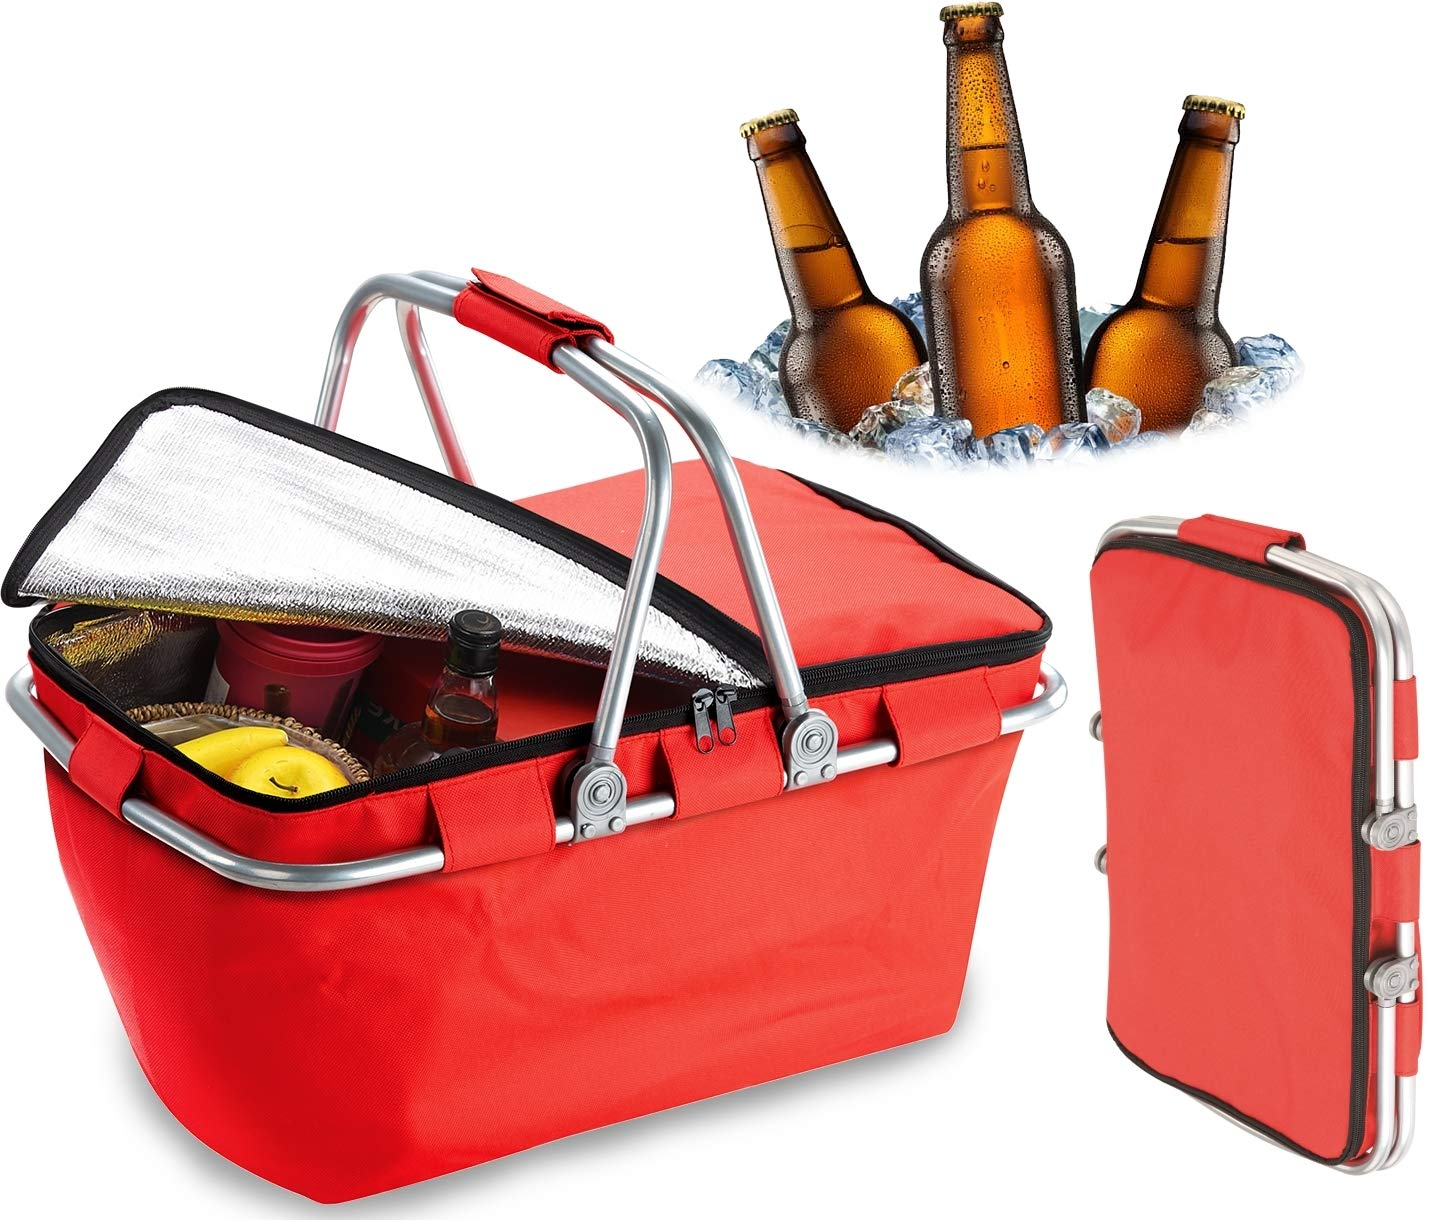 Bundaloo Collapsible Cooler Basket - Insulated Picnic Baskets for Lunch, Snacks, Drinks, Beer - Portable Food Storage Bags for Traveling, Fishing, Camping, Indoor, Beach (Red) by Bundaloo